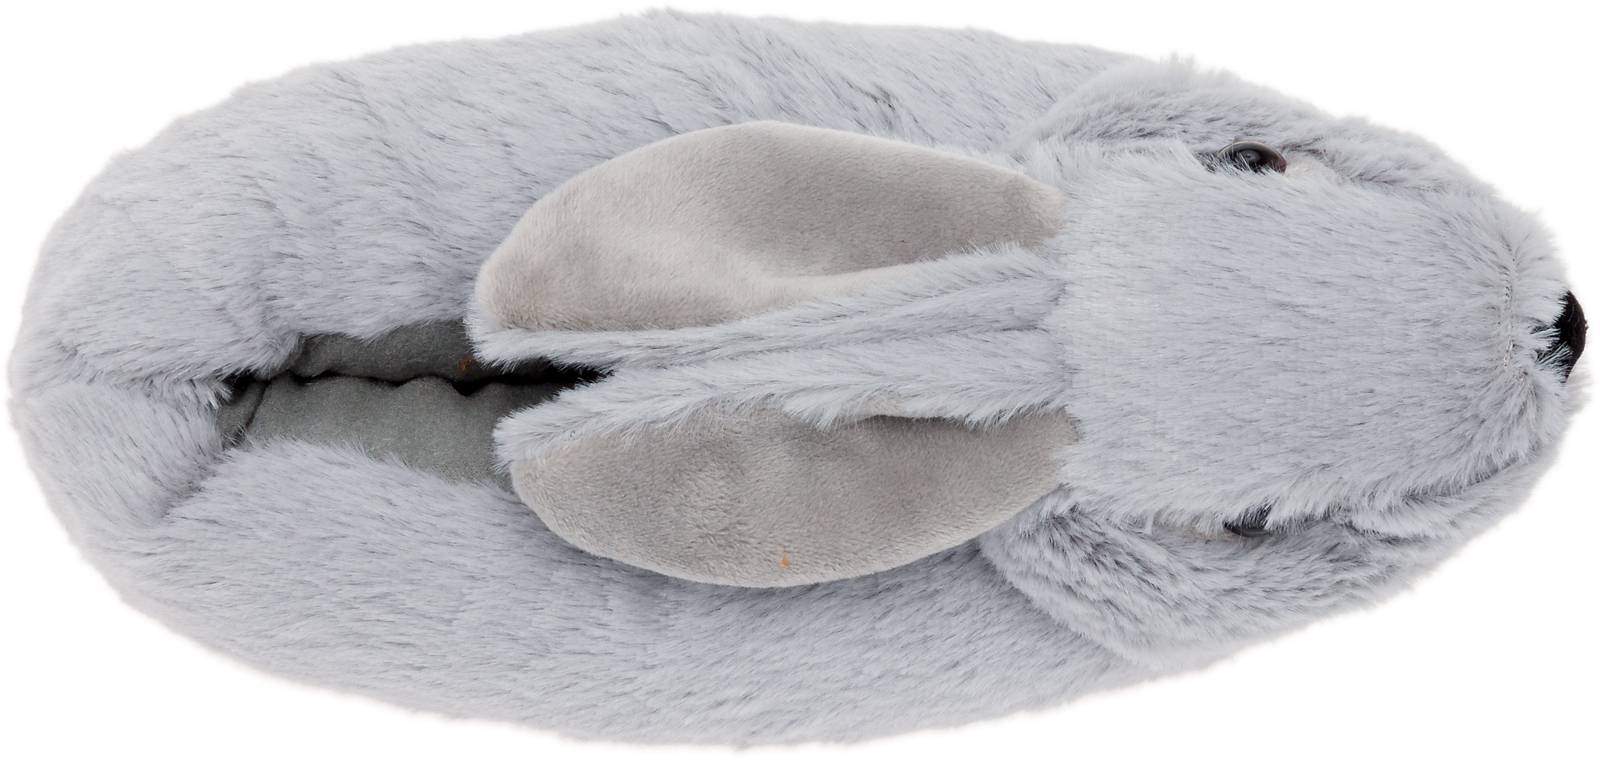 SILVER LILLY NEW Classic Bunny Slippers Novelty Plush Animal House Slippers